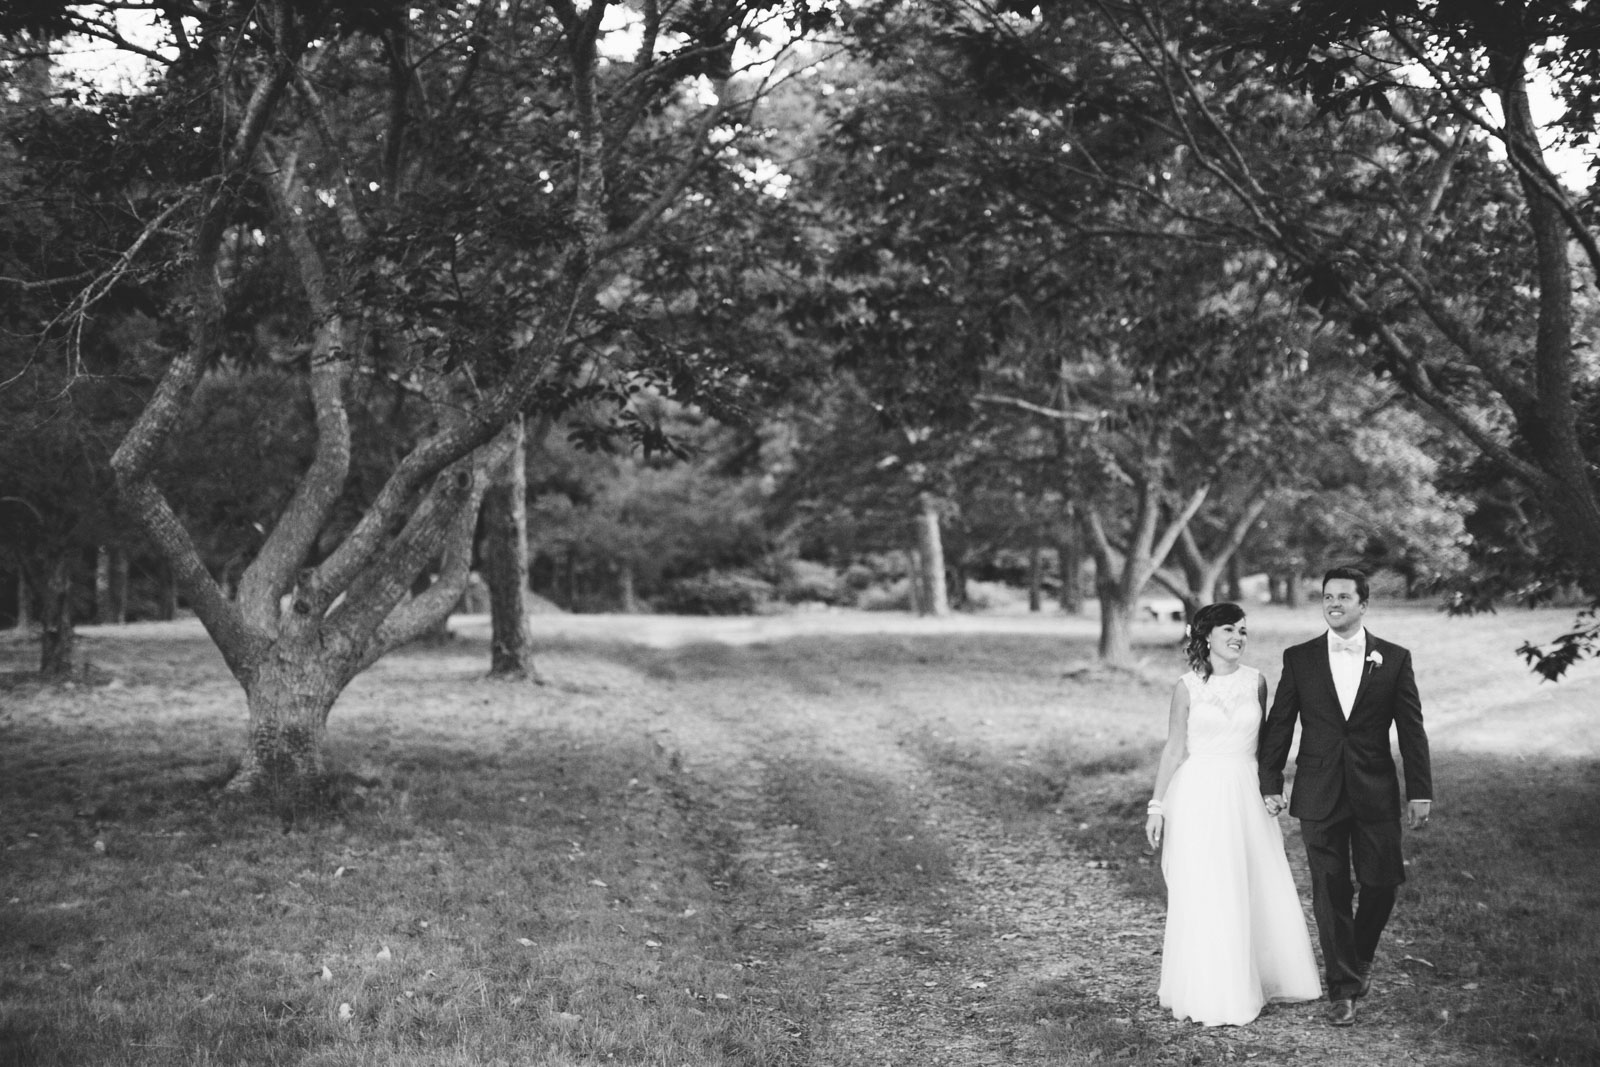 Bride and groom holding hands walking down a path of apple trees at Bourne Farm in black and white